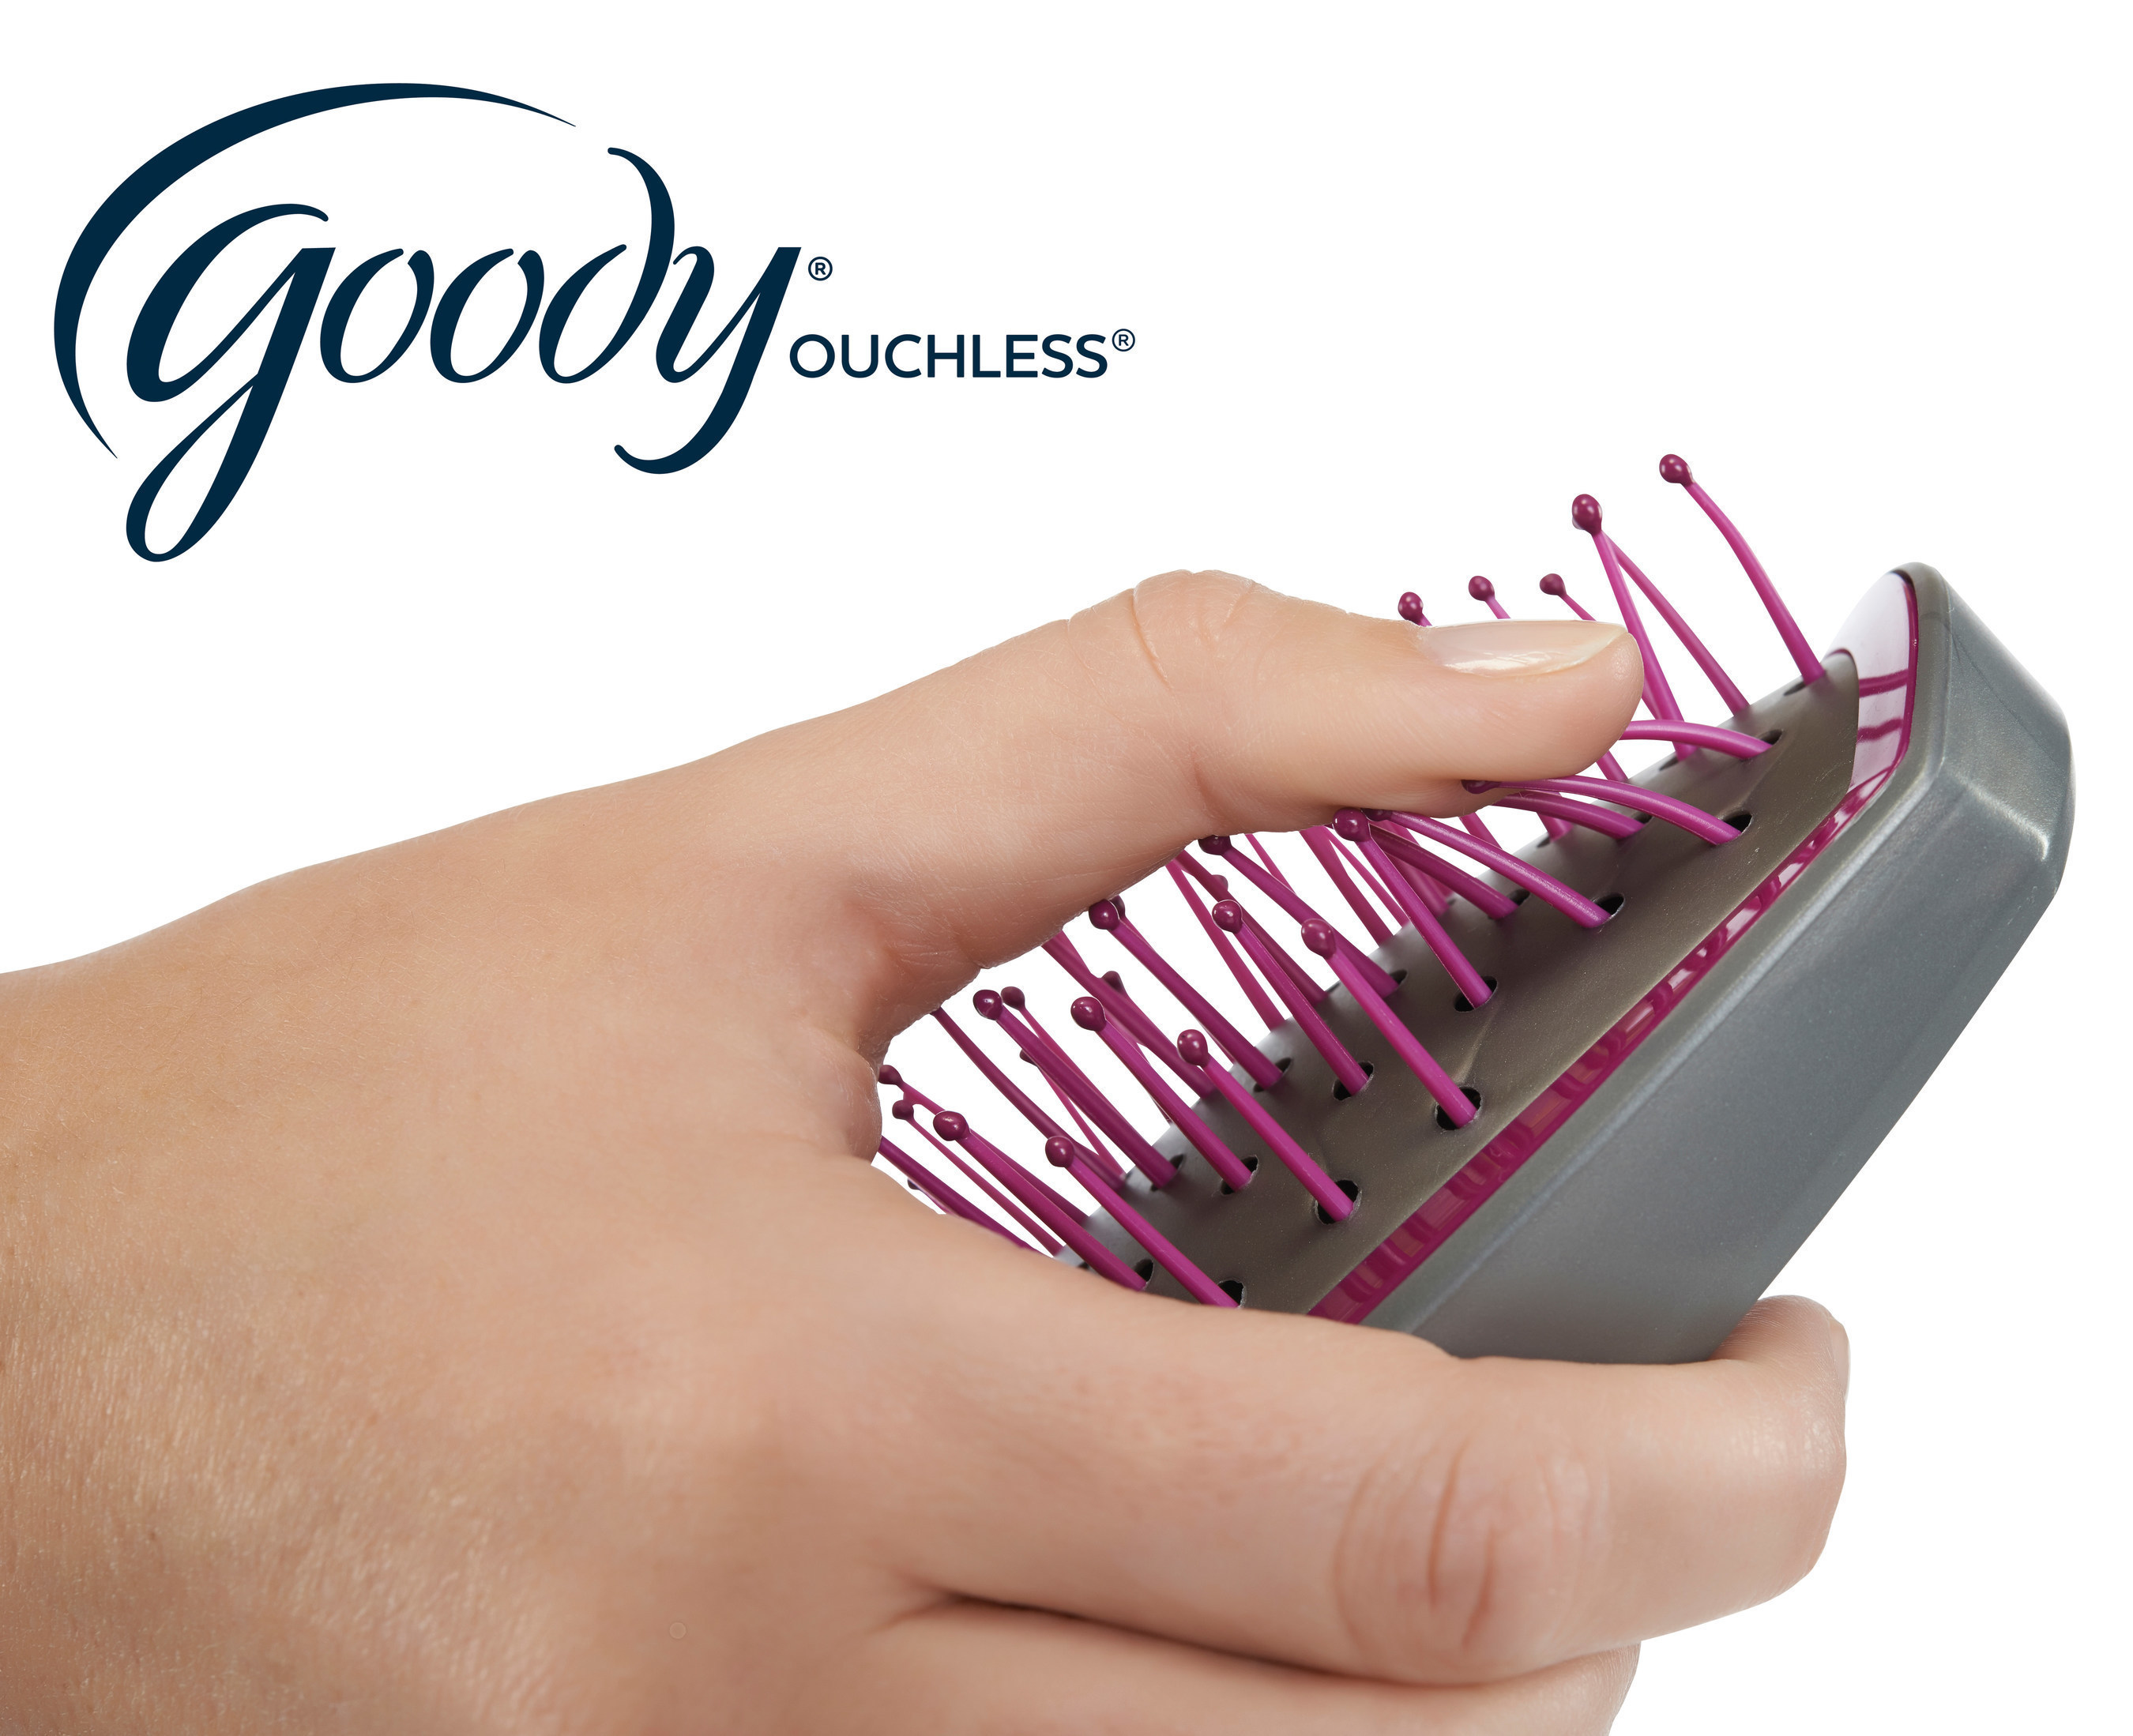 The new Goody Ouchless line of brushes feature exclusive FlexGlide(TM) bristles that are strong enough to work through knotted hair but gentle enough to detangle without breaking strands.